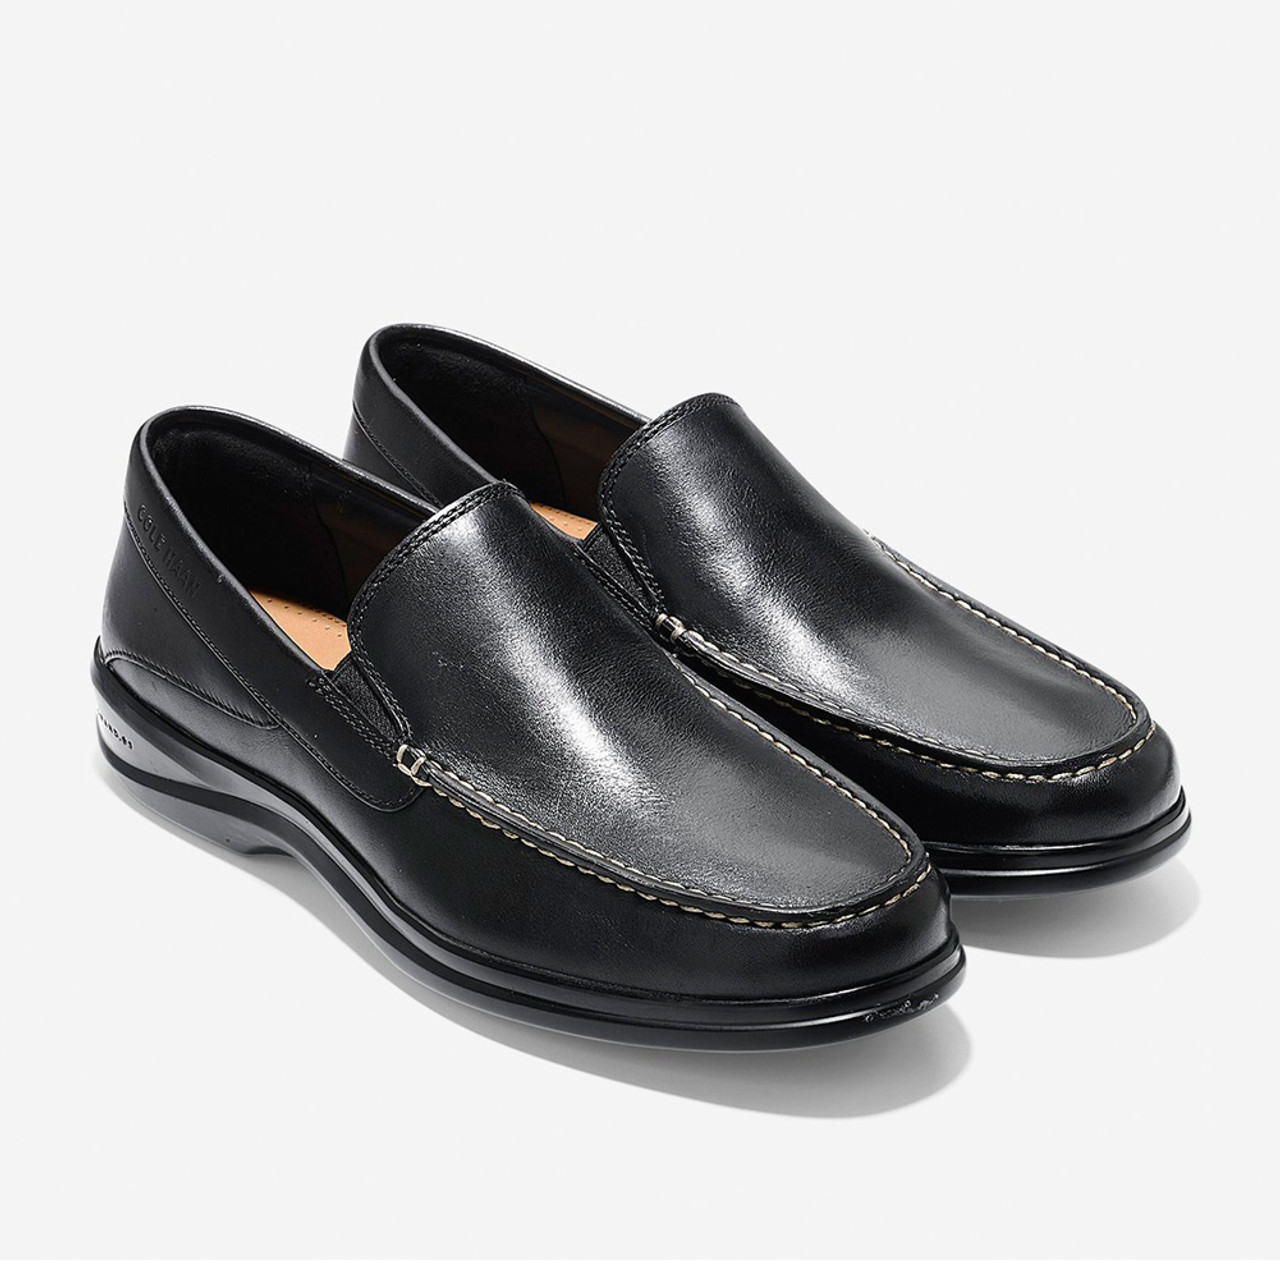 70f5424ccbb Cole Haan Men s Santa Barbara Twin Gore Loafer Black - Shop now   Shoolu.com